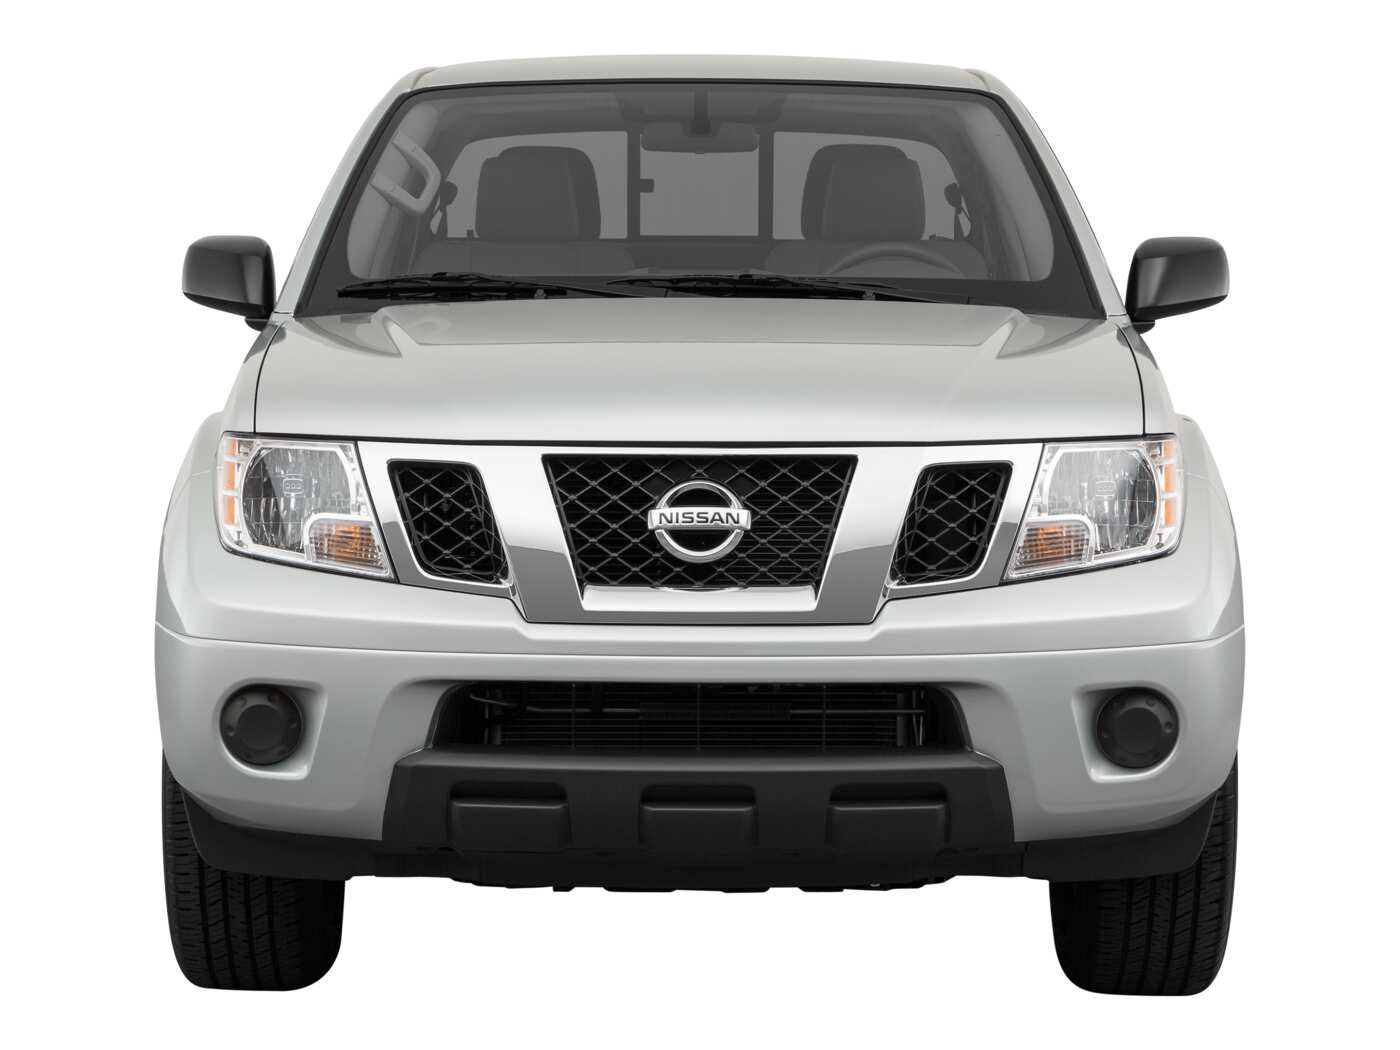 2019 Nissan Frontier Crew Cab 4x2 SL Automatic   IDEAL AUTO